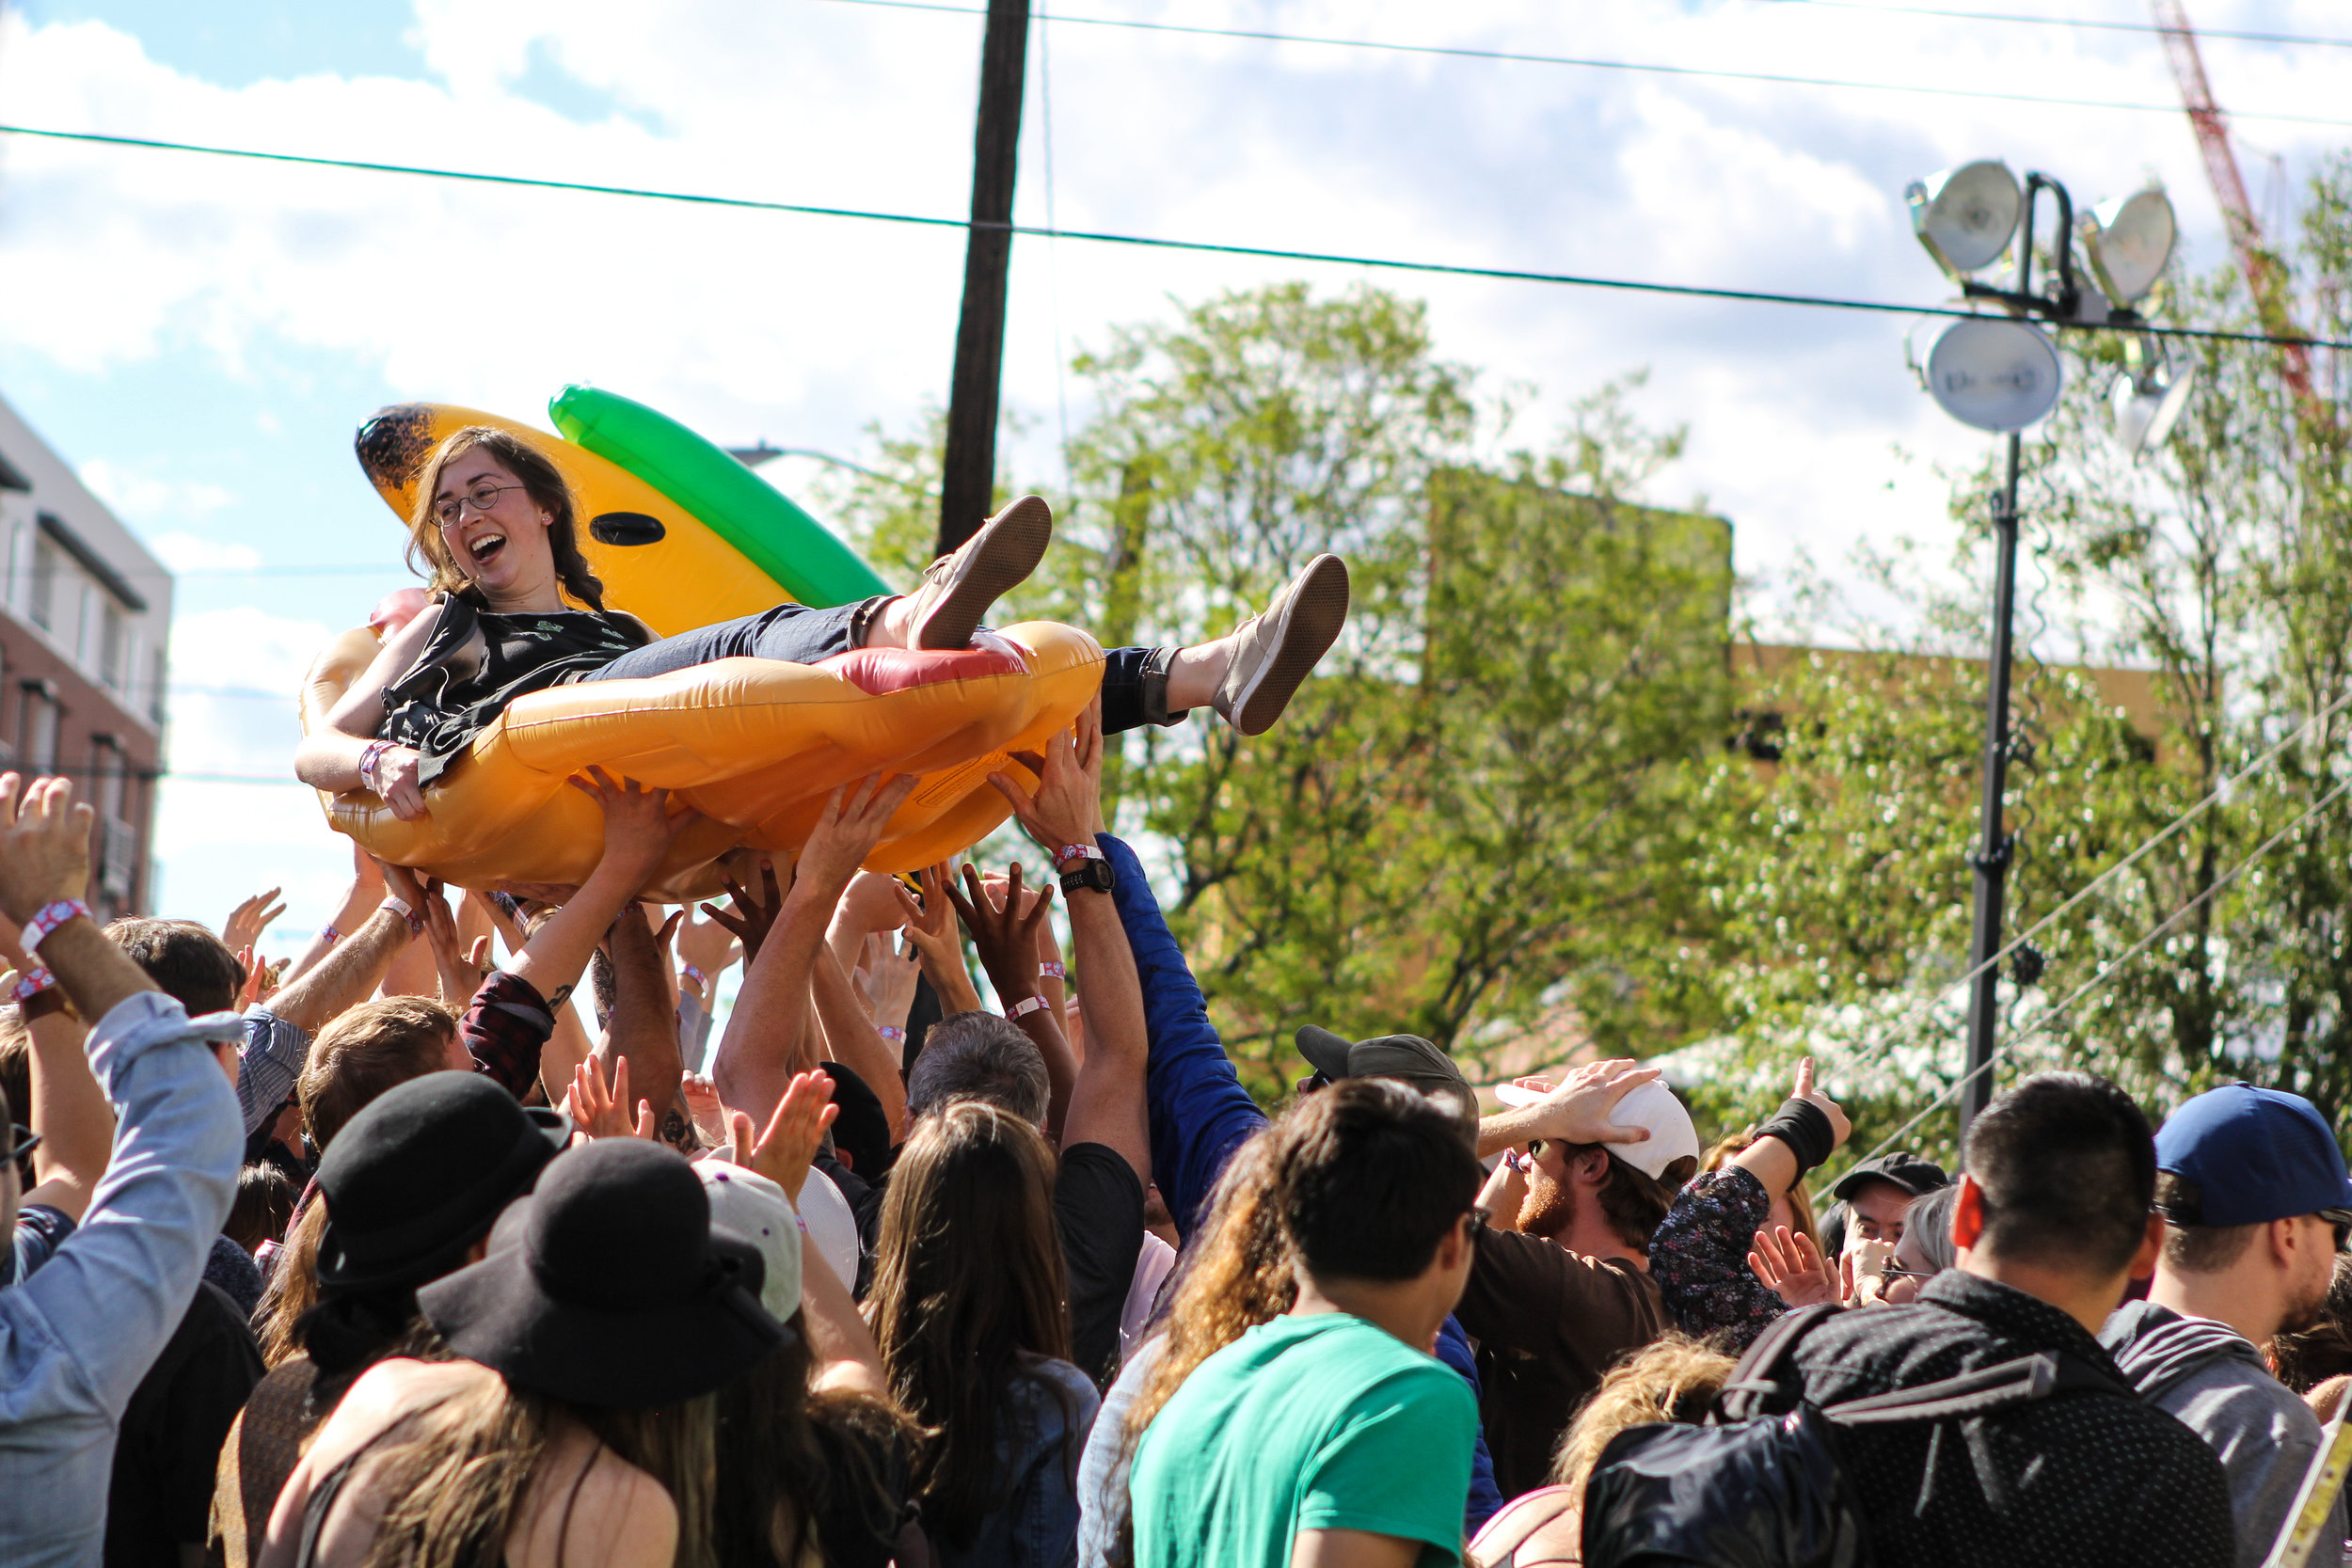 Crowd surfing on a pizza is on our bucket list (Photo Credit: Robert Castro)